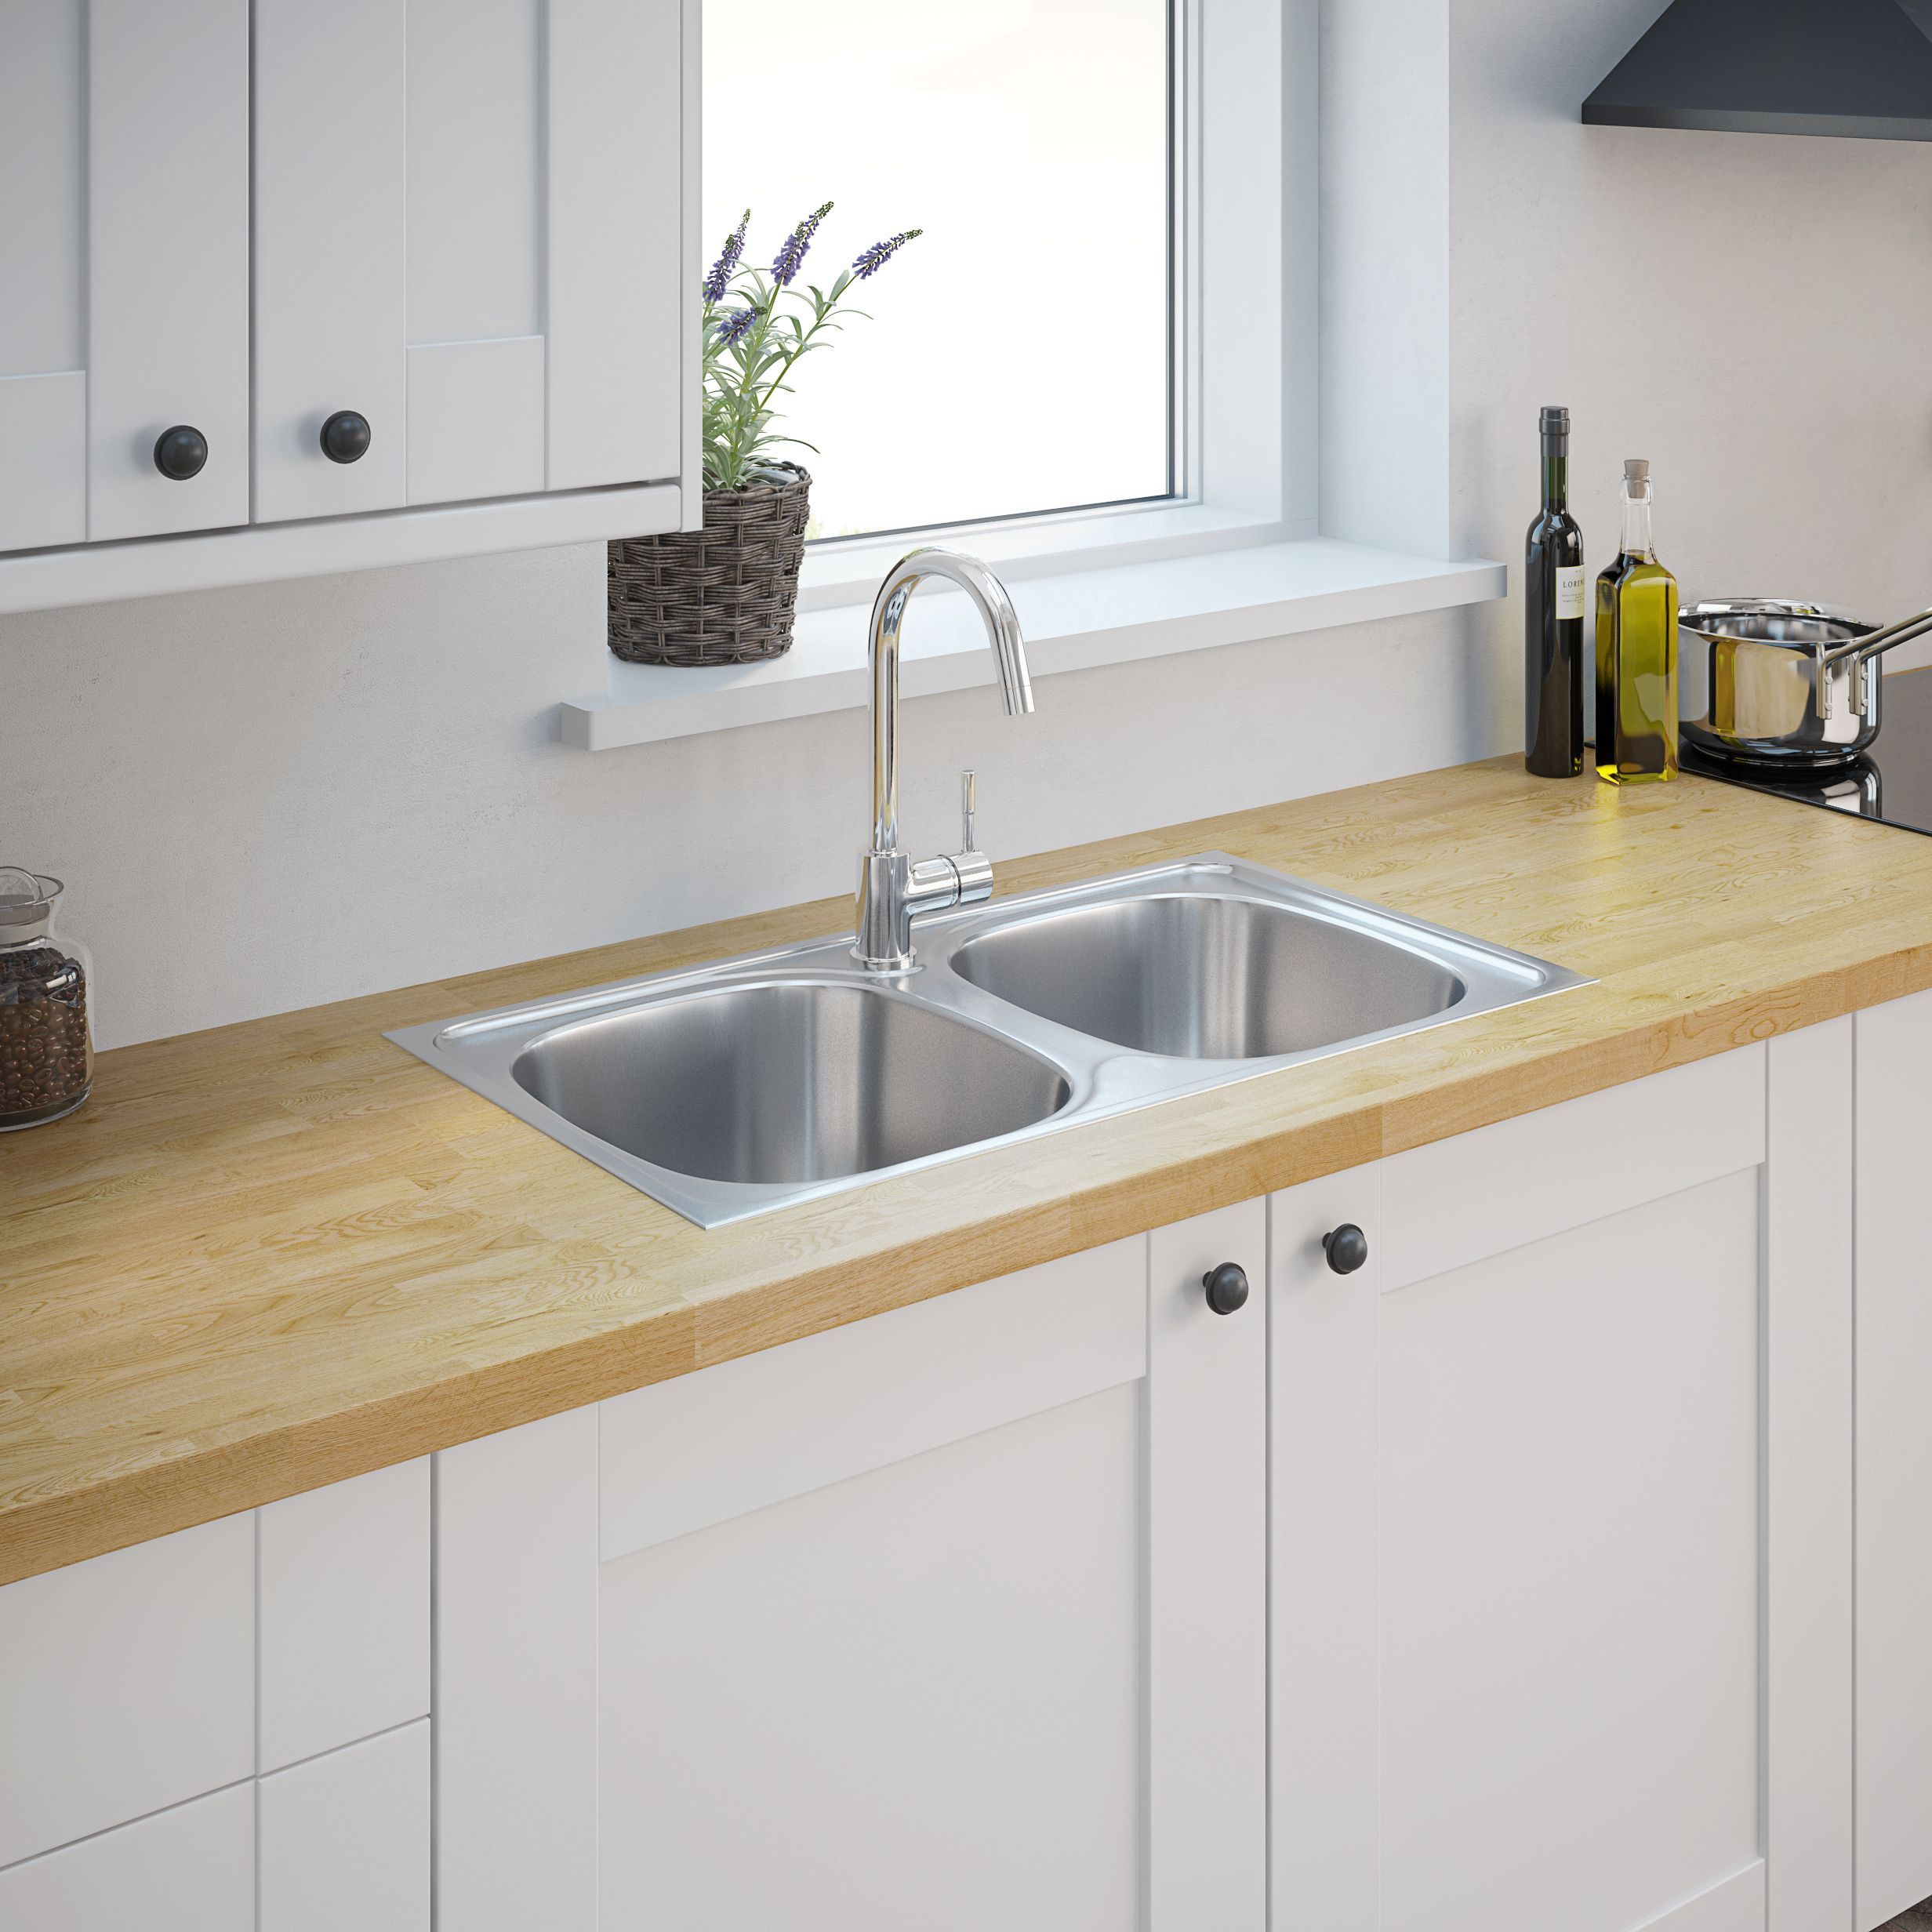 Pin by Sineadkeeley on Property Composite kitchen sinks